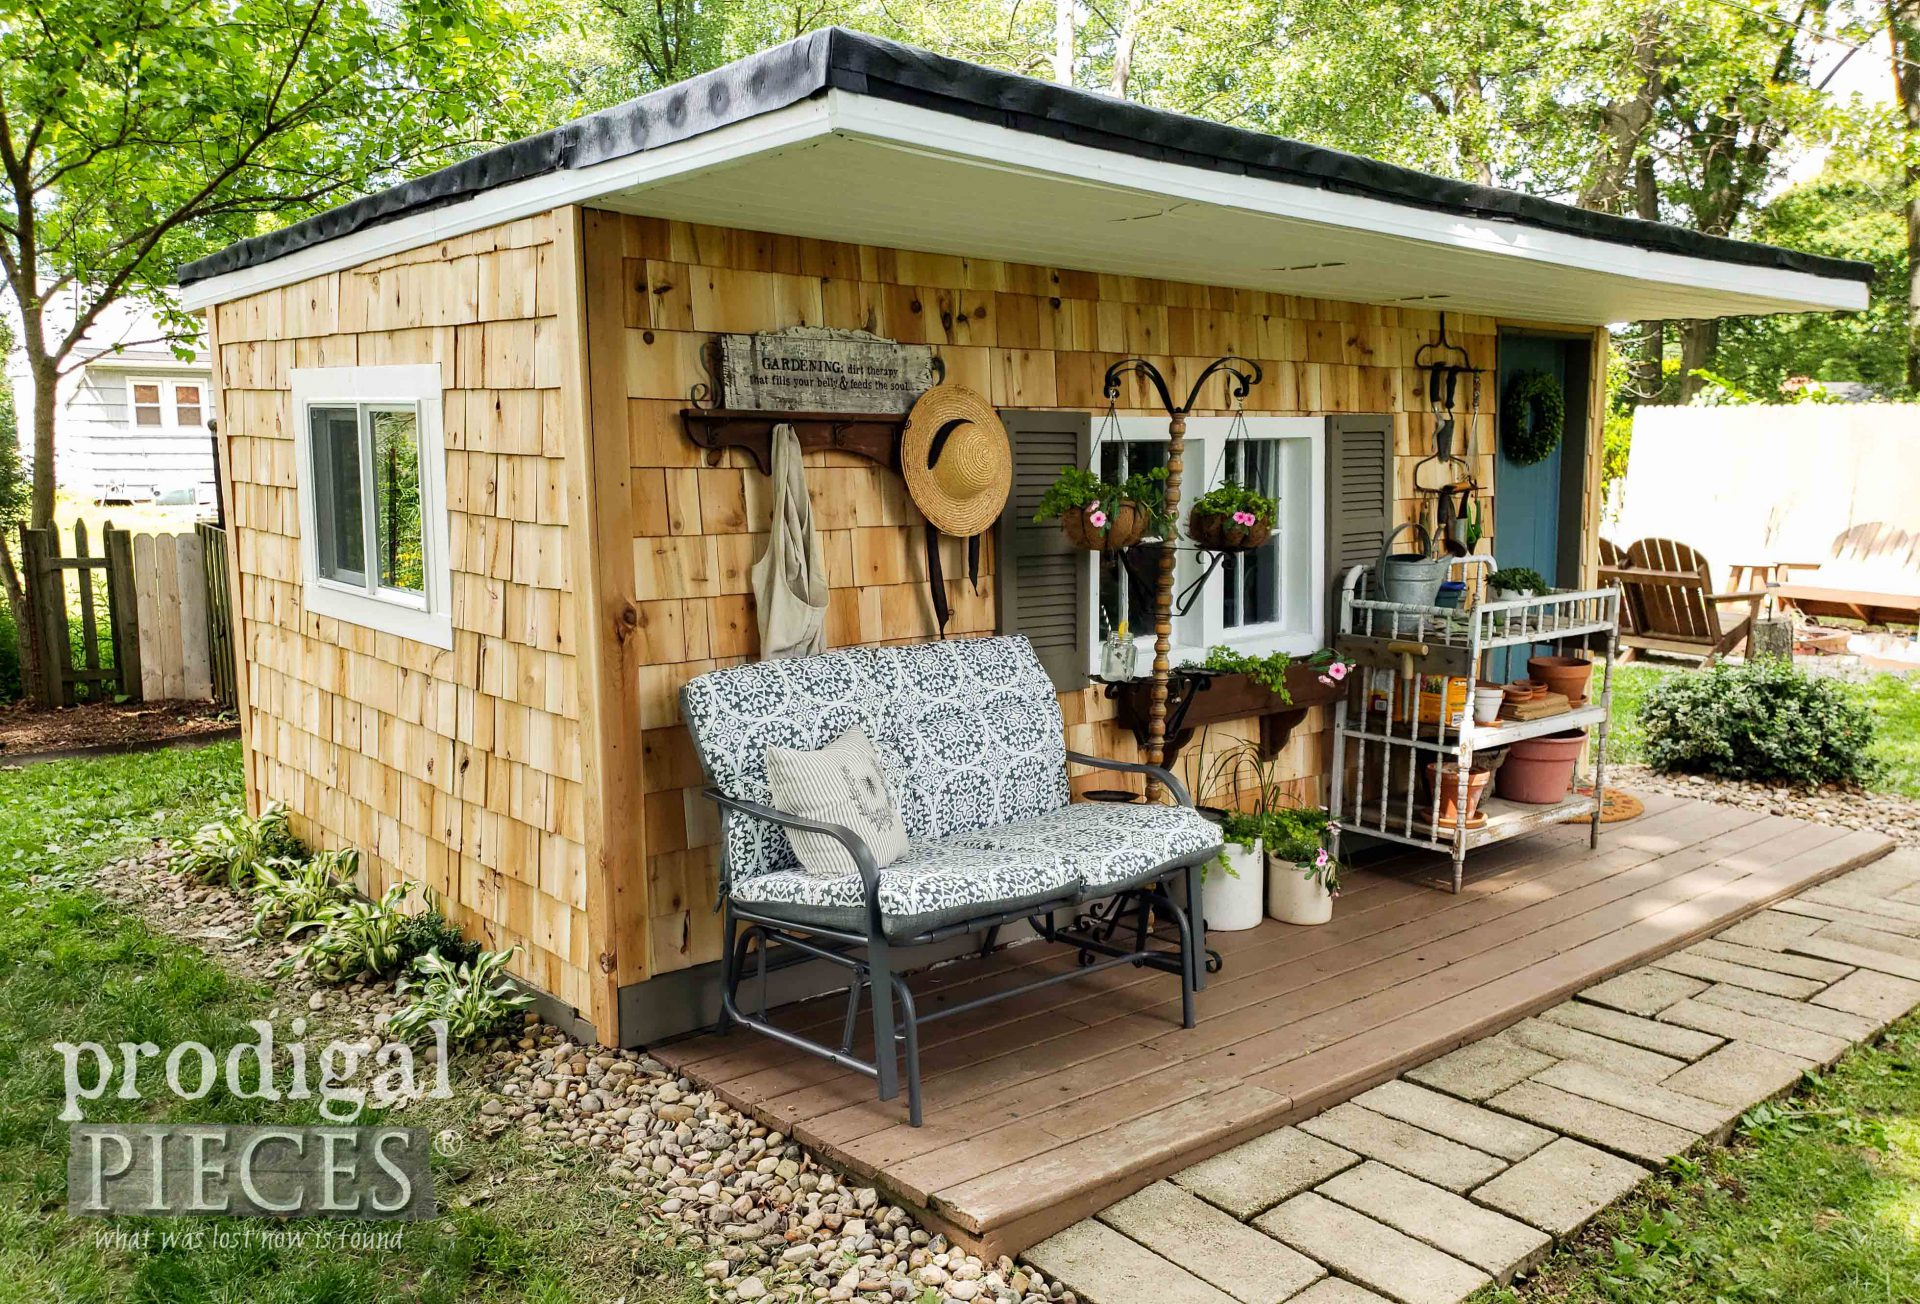 Rustic Cedar Garden Shed Remodel by Prodigal Pieces | prodigalpieces.com #prodigalpieces #diy #home #homedecor